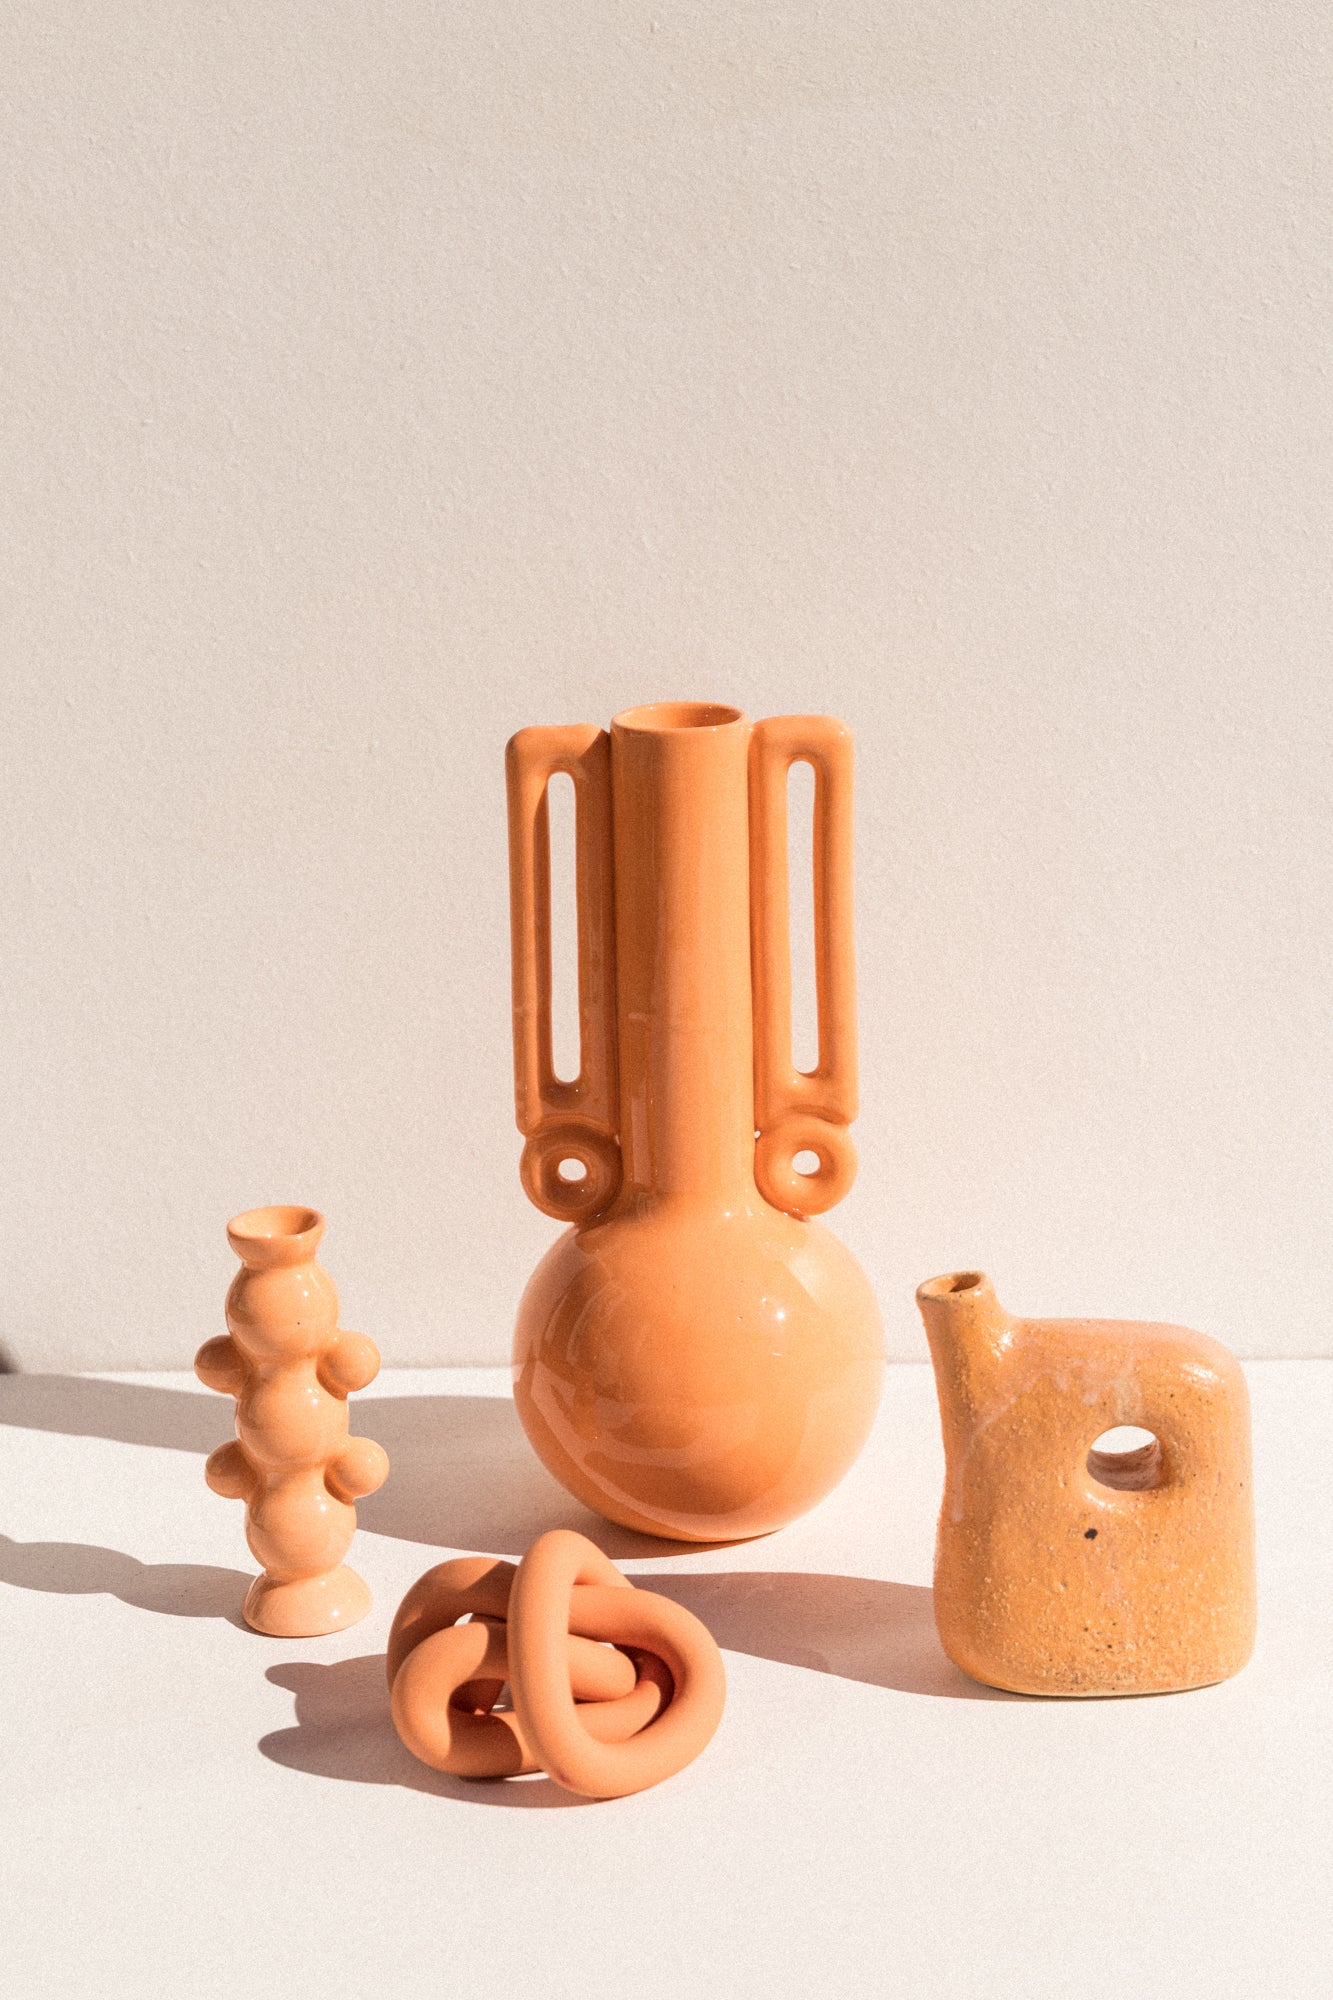 Colour therapy, Orange Vase and candle holder by Abs Objects, Deborah sweeney vase and Arowm jumbo ceramic knot on Makers' Mrkt Melbourne